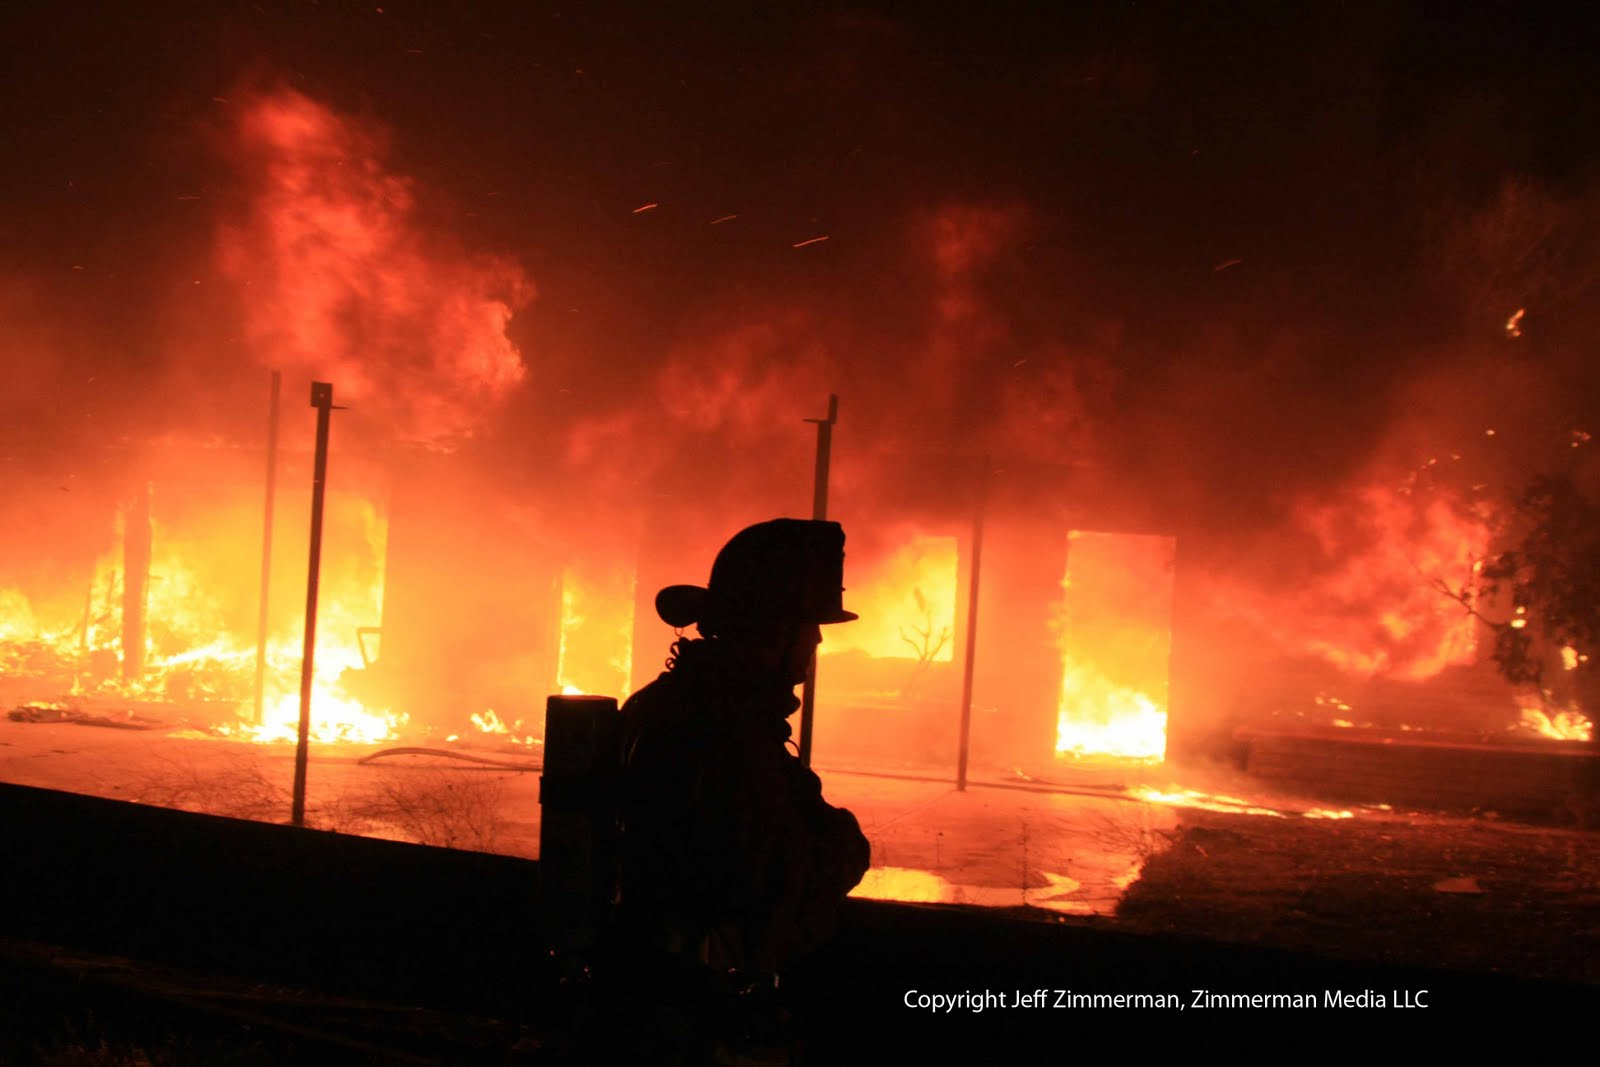 Zimmerman Media Llc Structure Fire Lacofd 37 S P 8 And